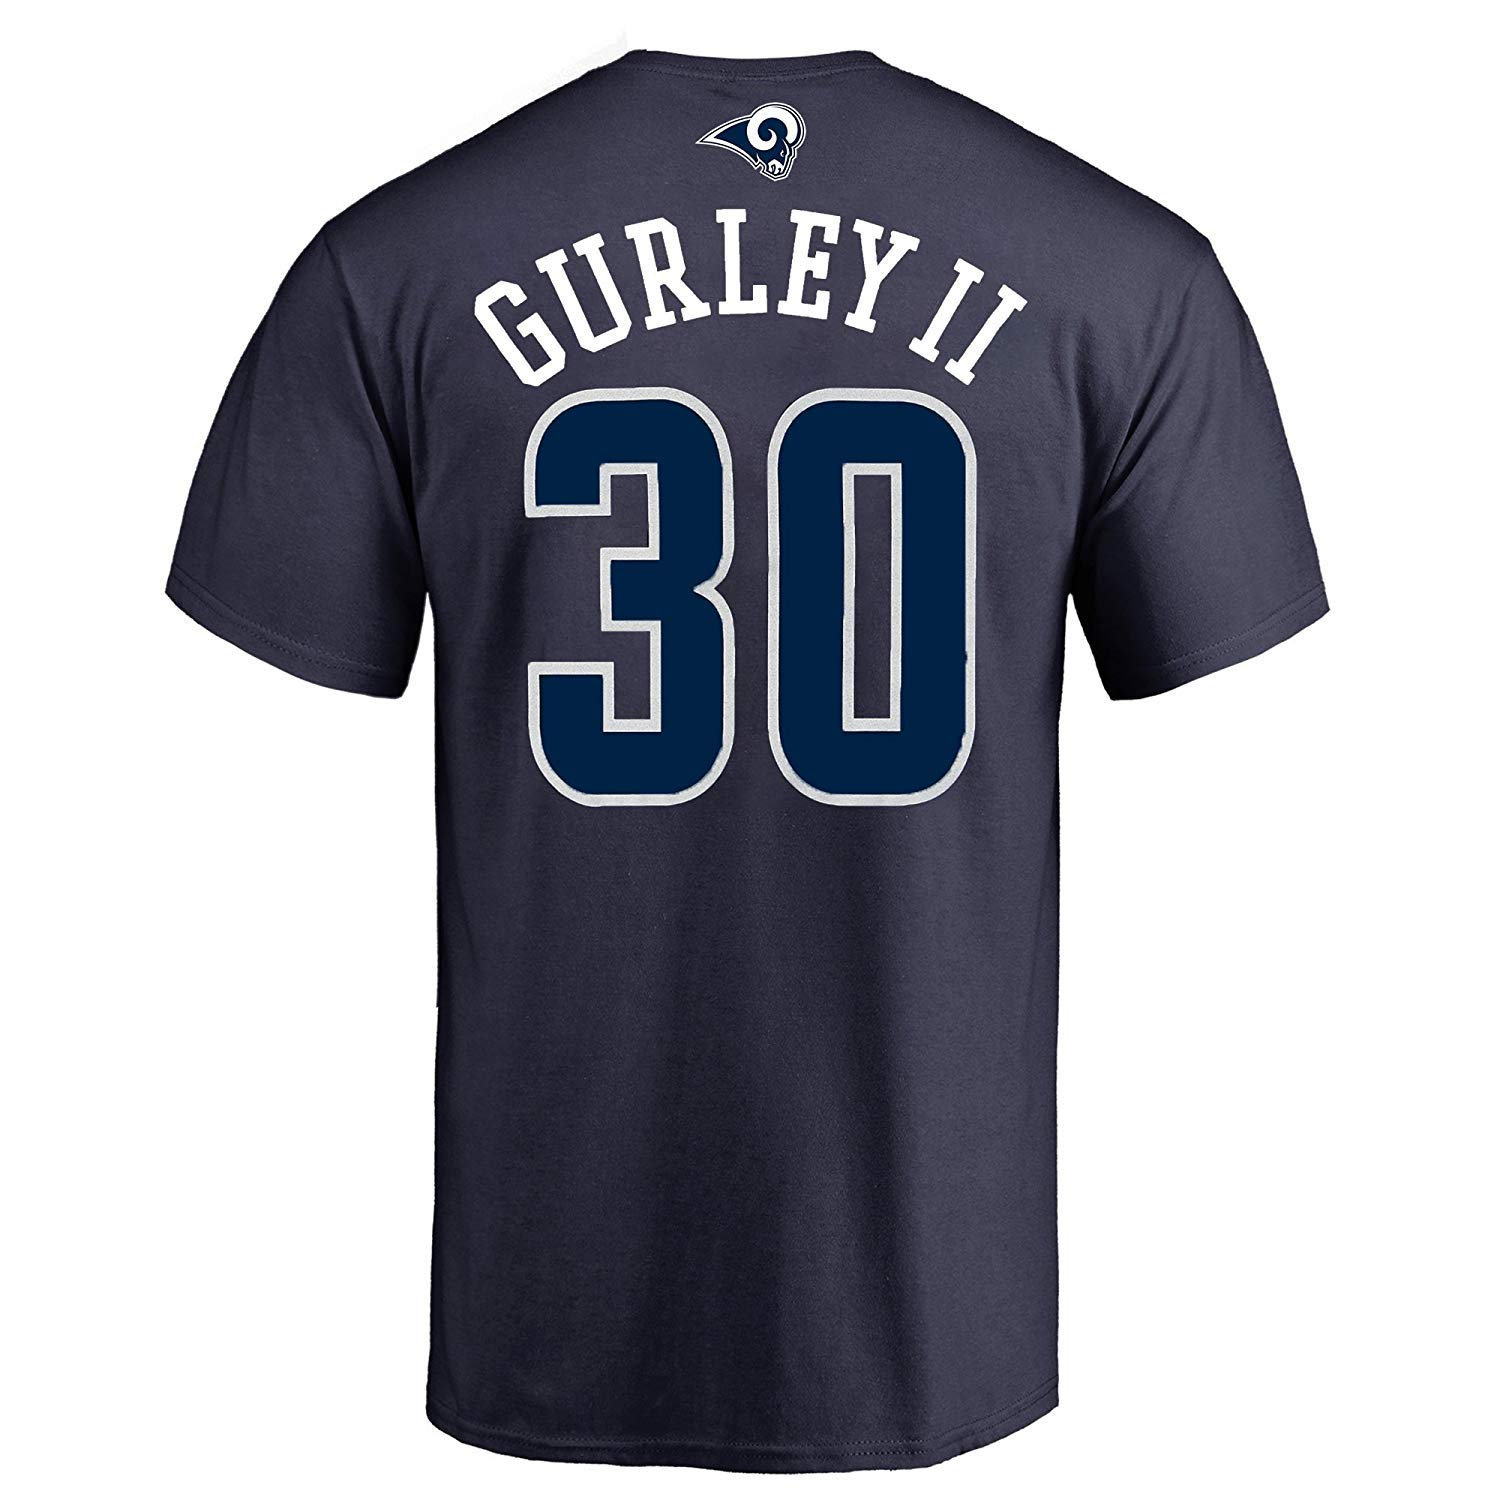 low priced 6d794 ba054 Outerstuff Todd Gurley II Los Angeles Rams #30 Navy Youth Performance Name  & Number Shirt